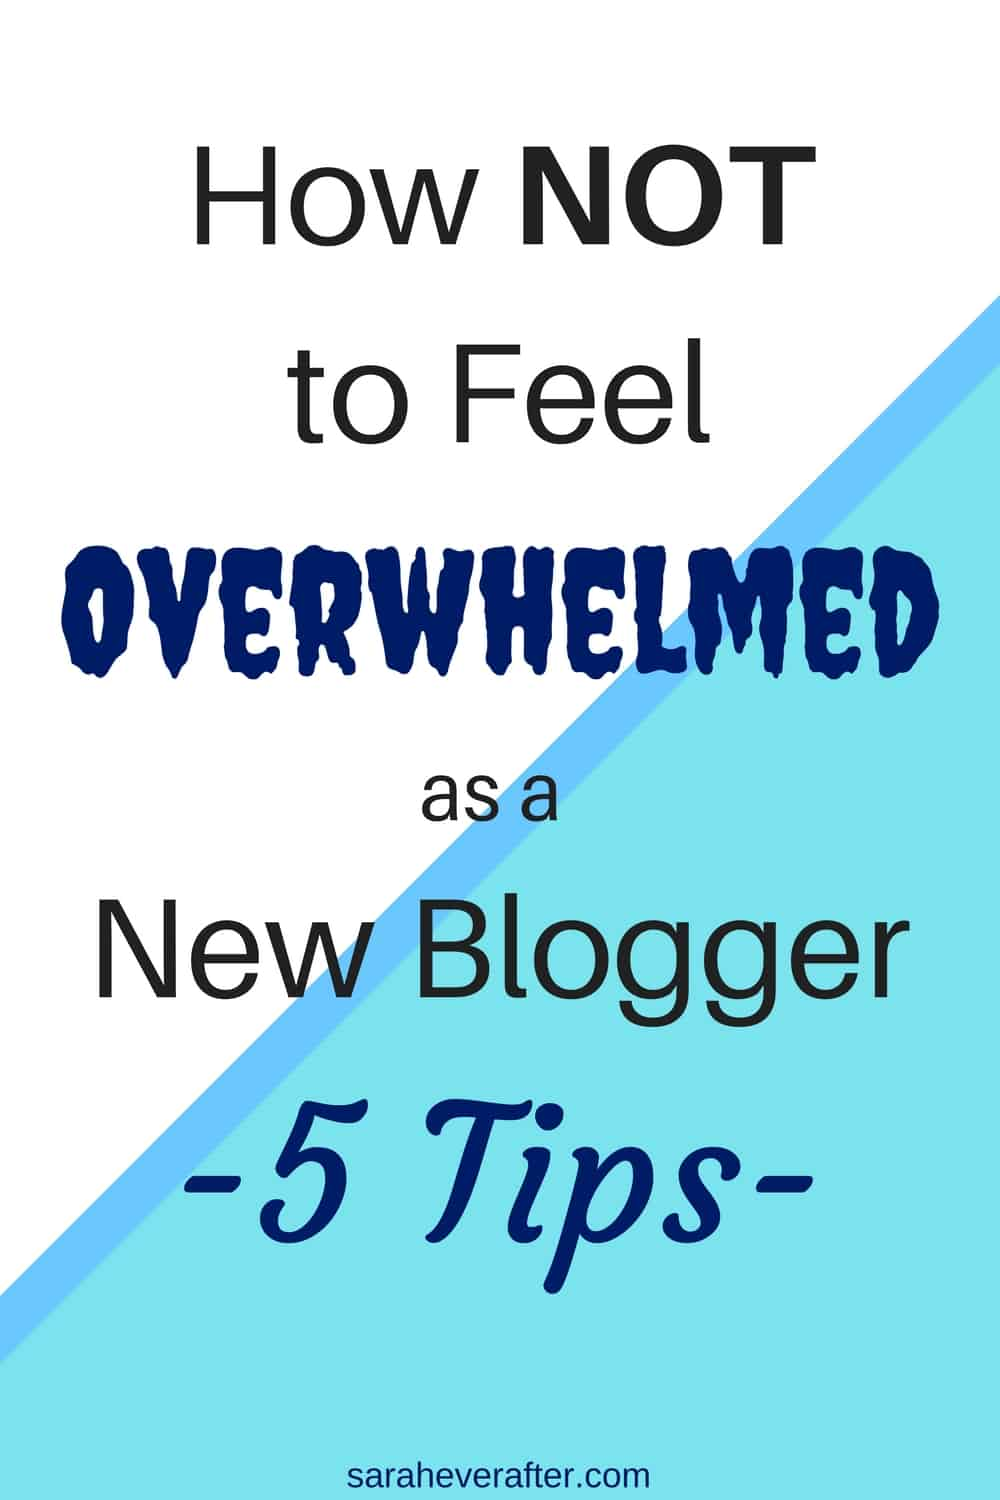 5 Tips to Help New Bloggers Cope With Feeling Overwhelmed   saraheverafter.com